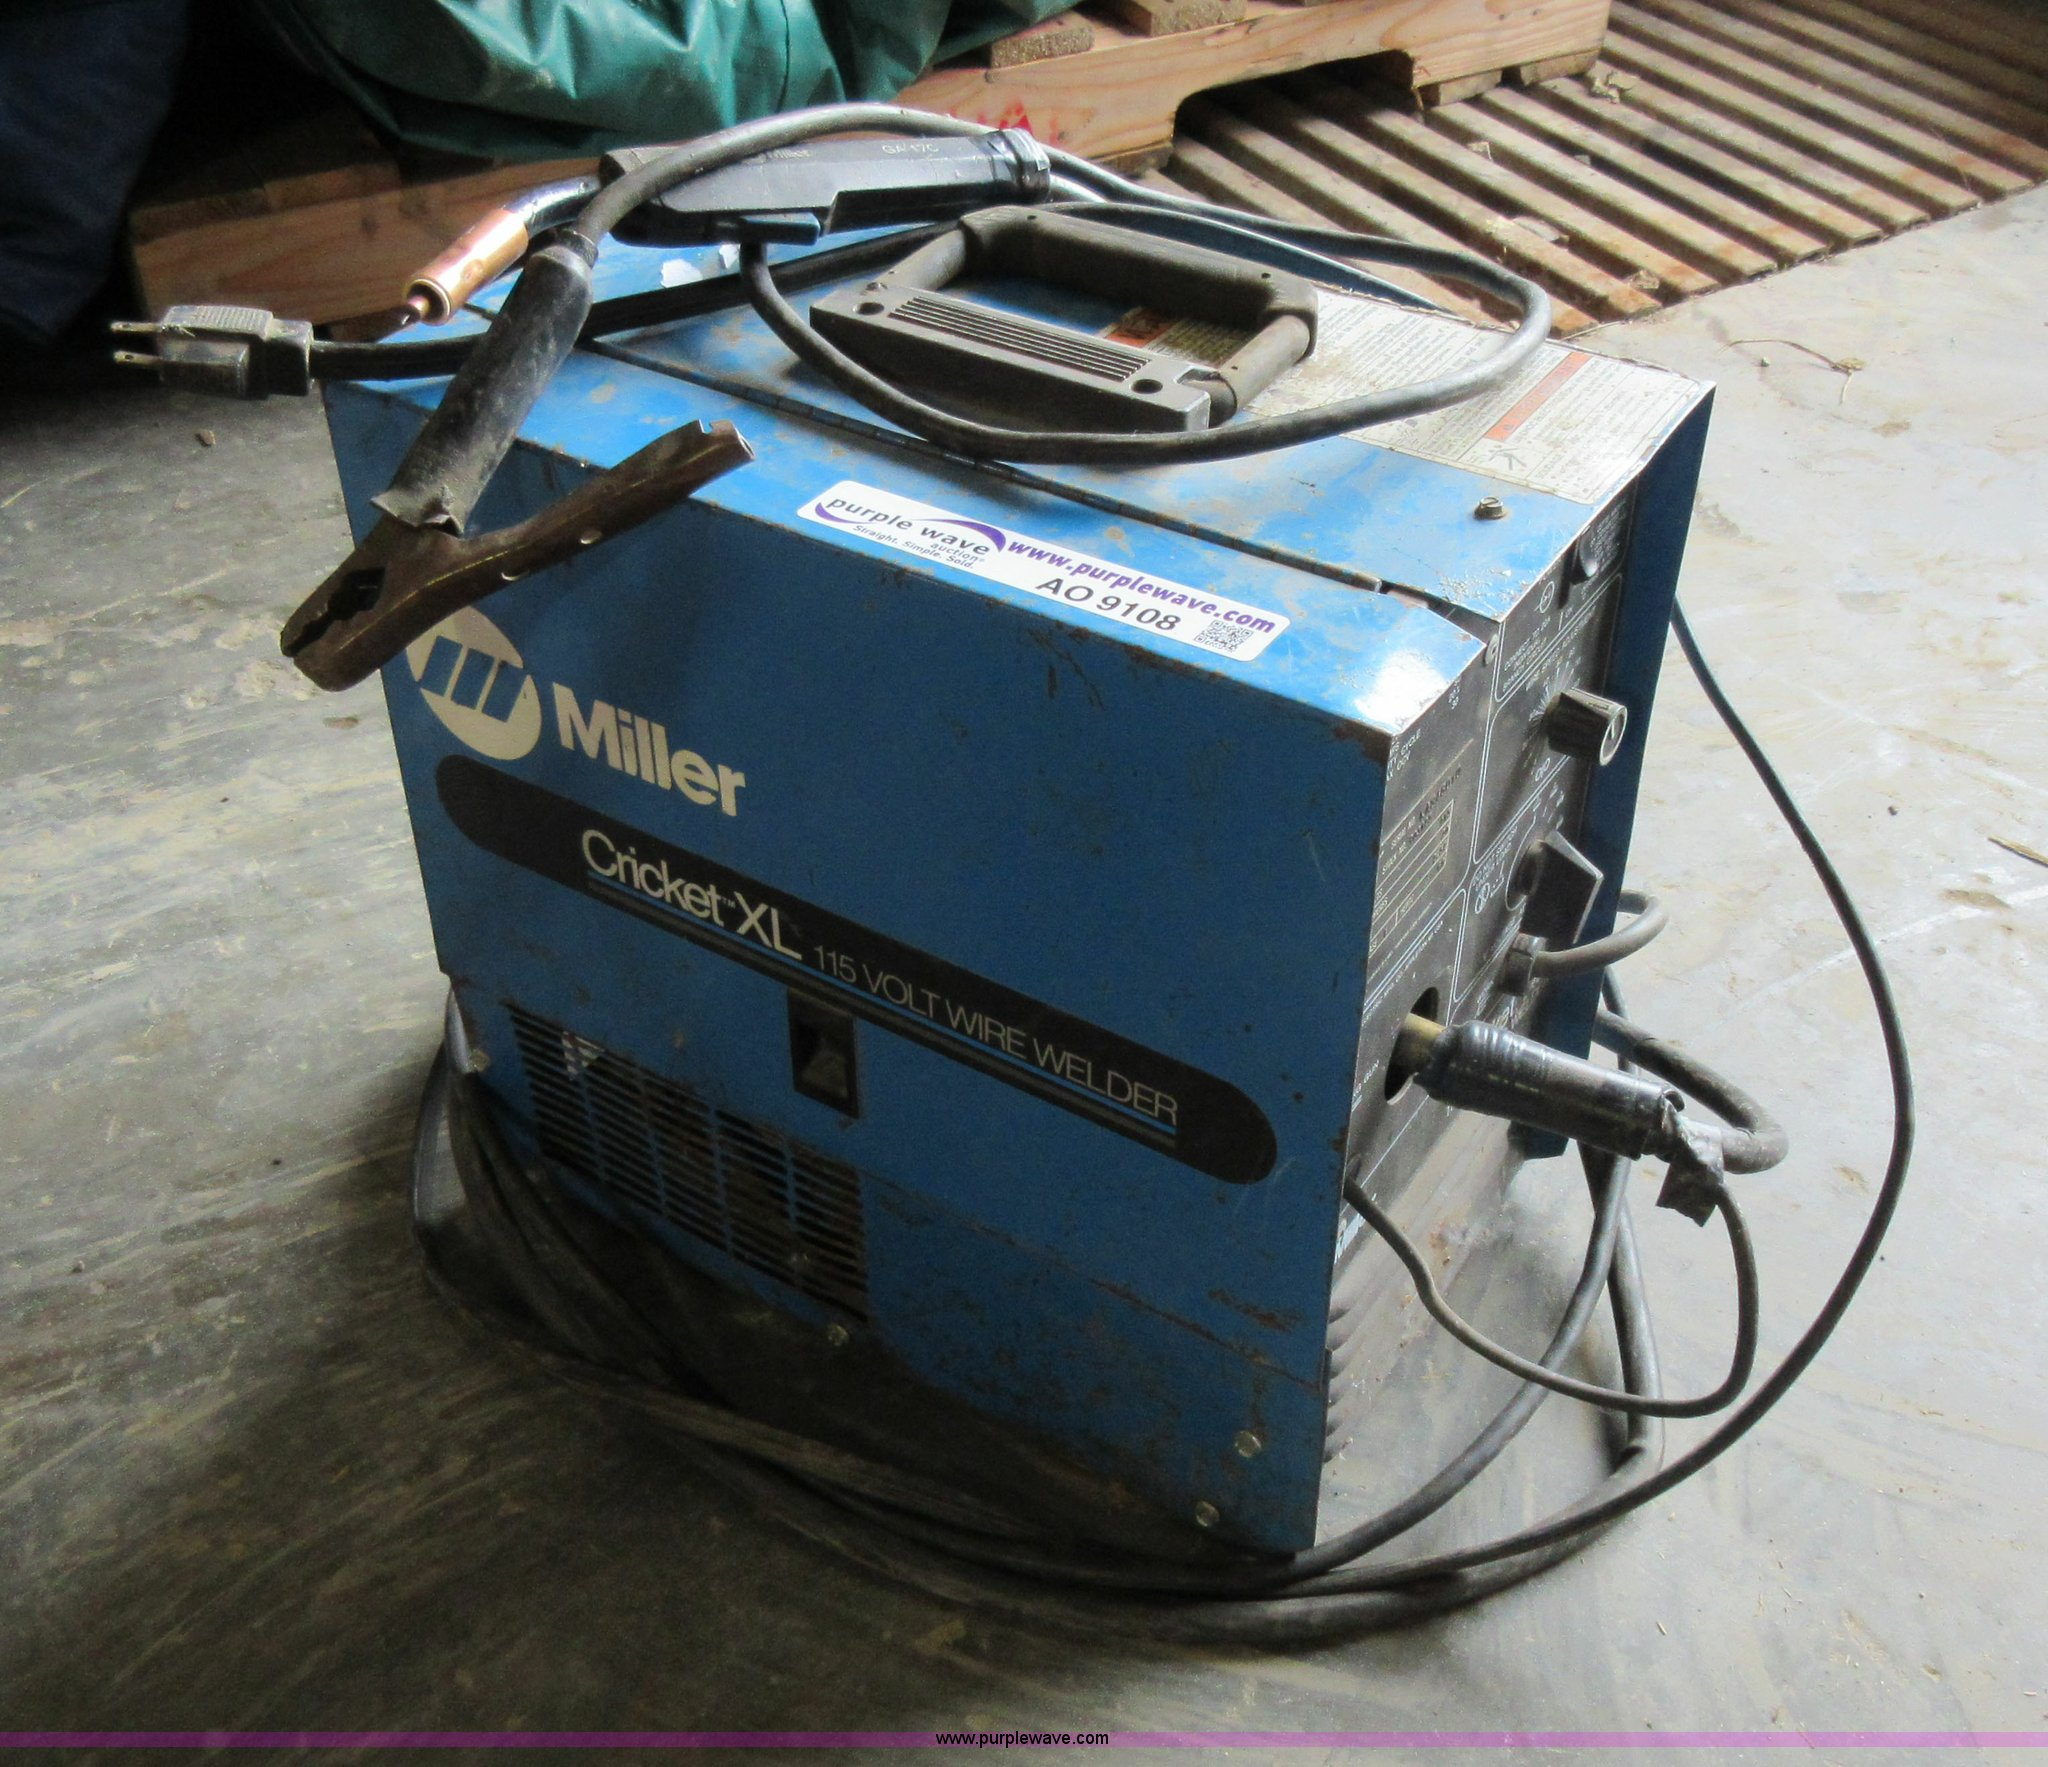 Miller 110 Wire Welder Machines Mig Tig Combo Wiring Diagram Cricket Xl Item Ao9108 Sold Thursday Suitcase Image For